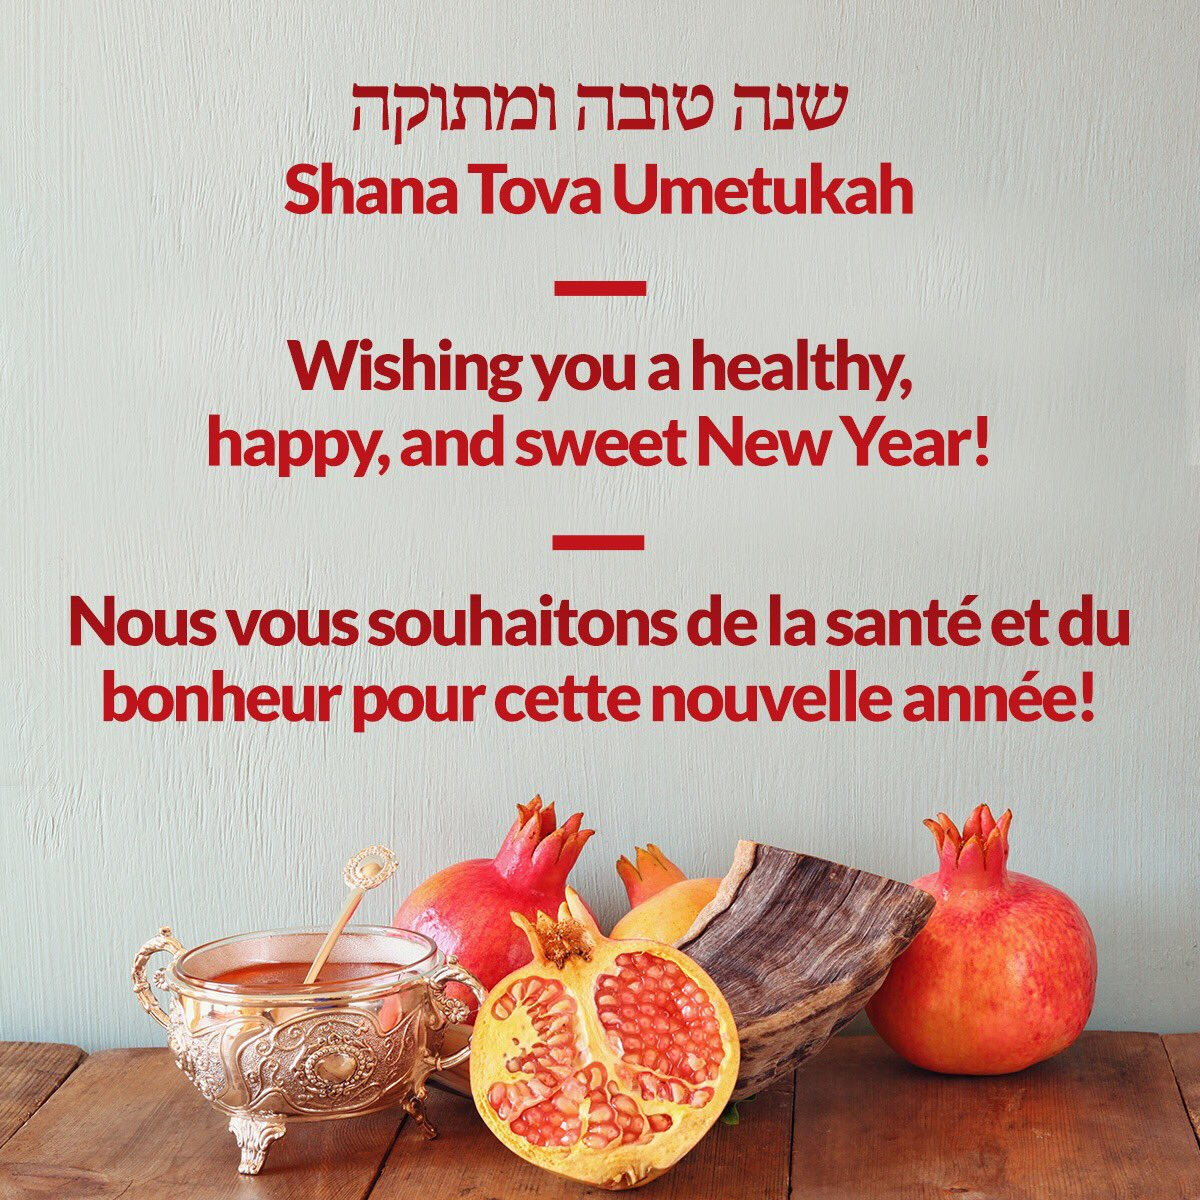 Raj Grewal On Twitter Wishing All Those Celebrating Rosh Hashanah A Very Joyous Occasion Filled With Sweets Renewal And Happiness Shana Tova Umetukah Https T Co Hfdo2mk4dm